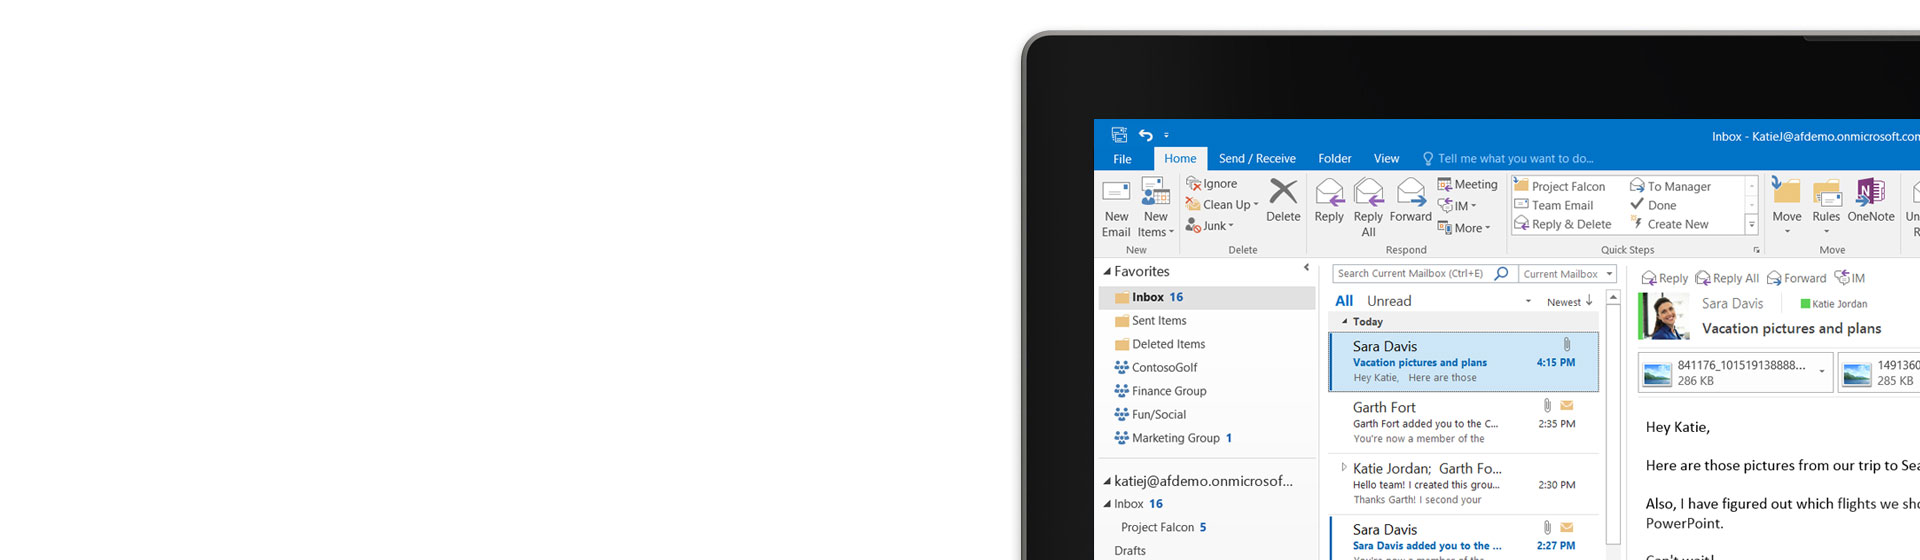 Microsoft Outlook running on a tablet computer with a message preview window open